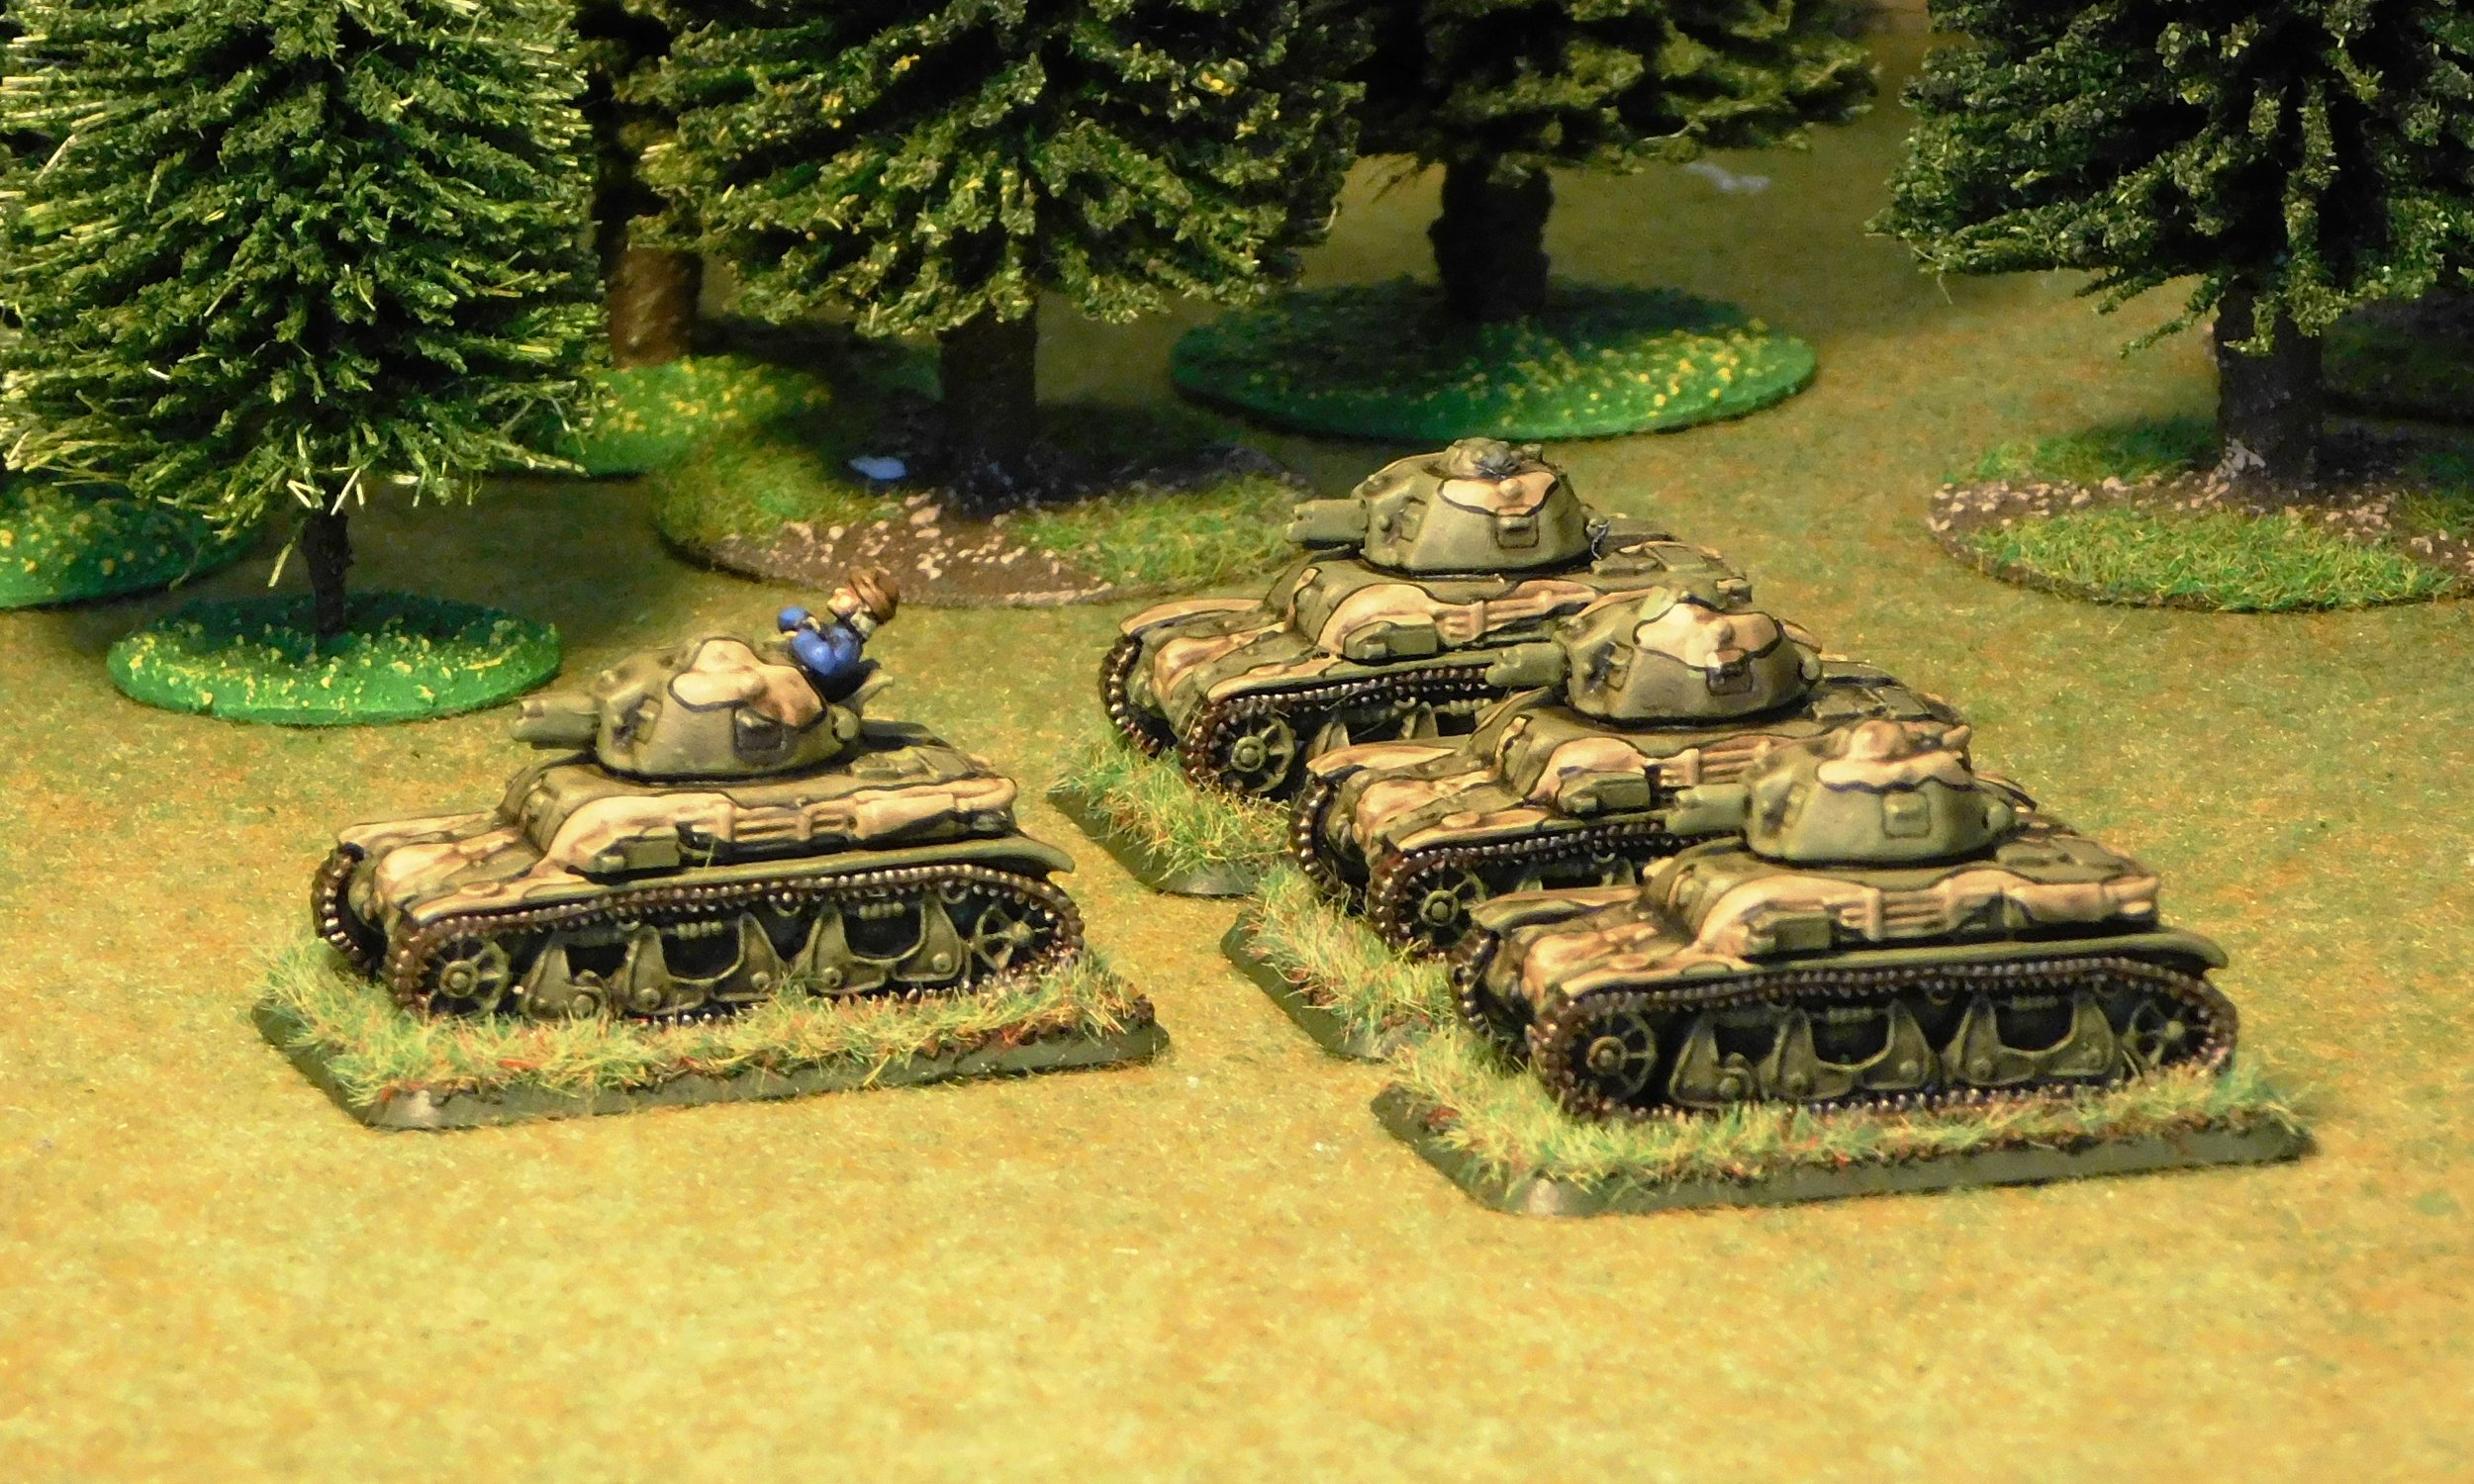 Some rather colourful R-35's from a supporting GBC ( Groupe de Bataillons de Chars)